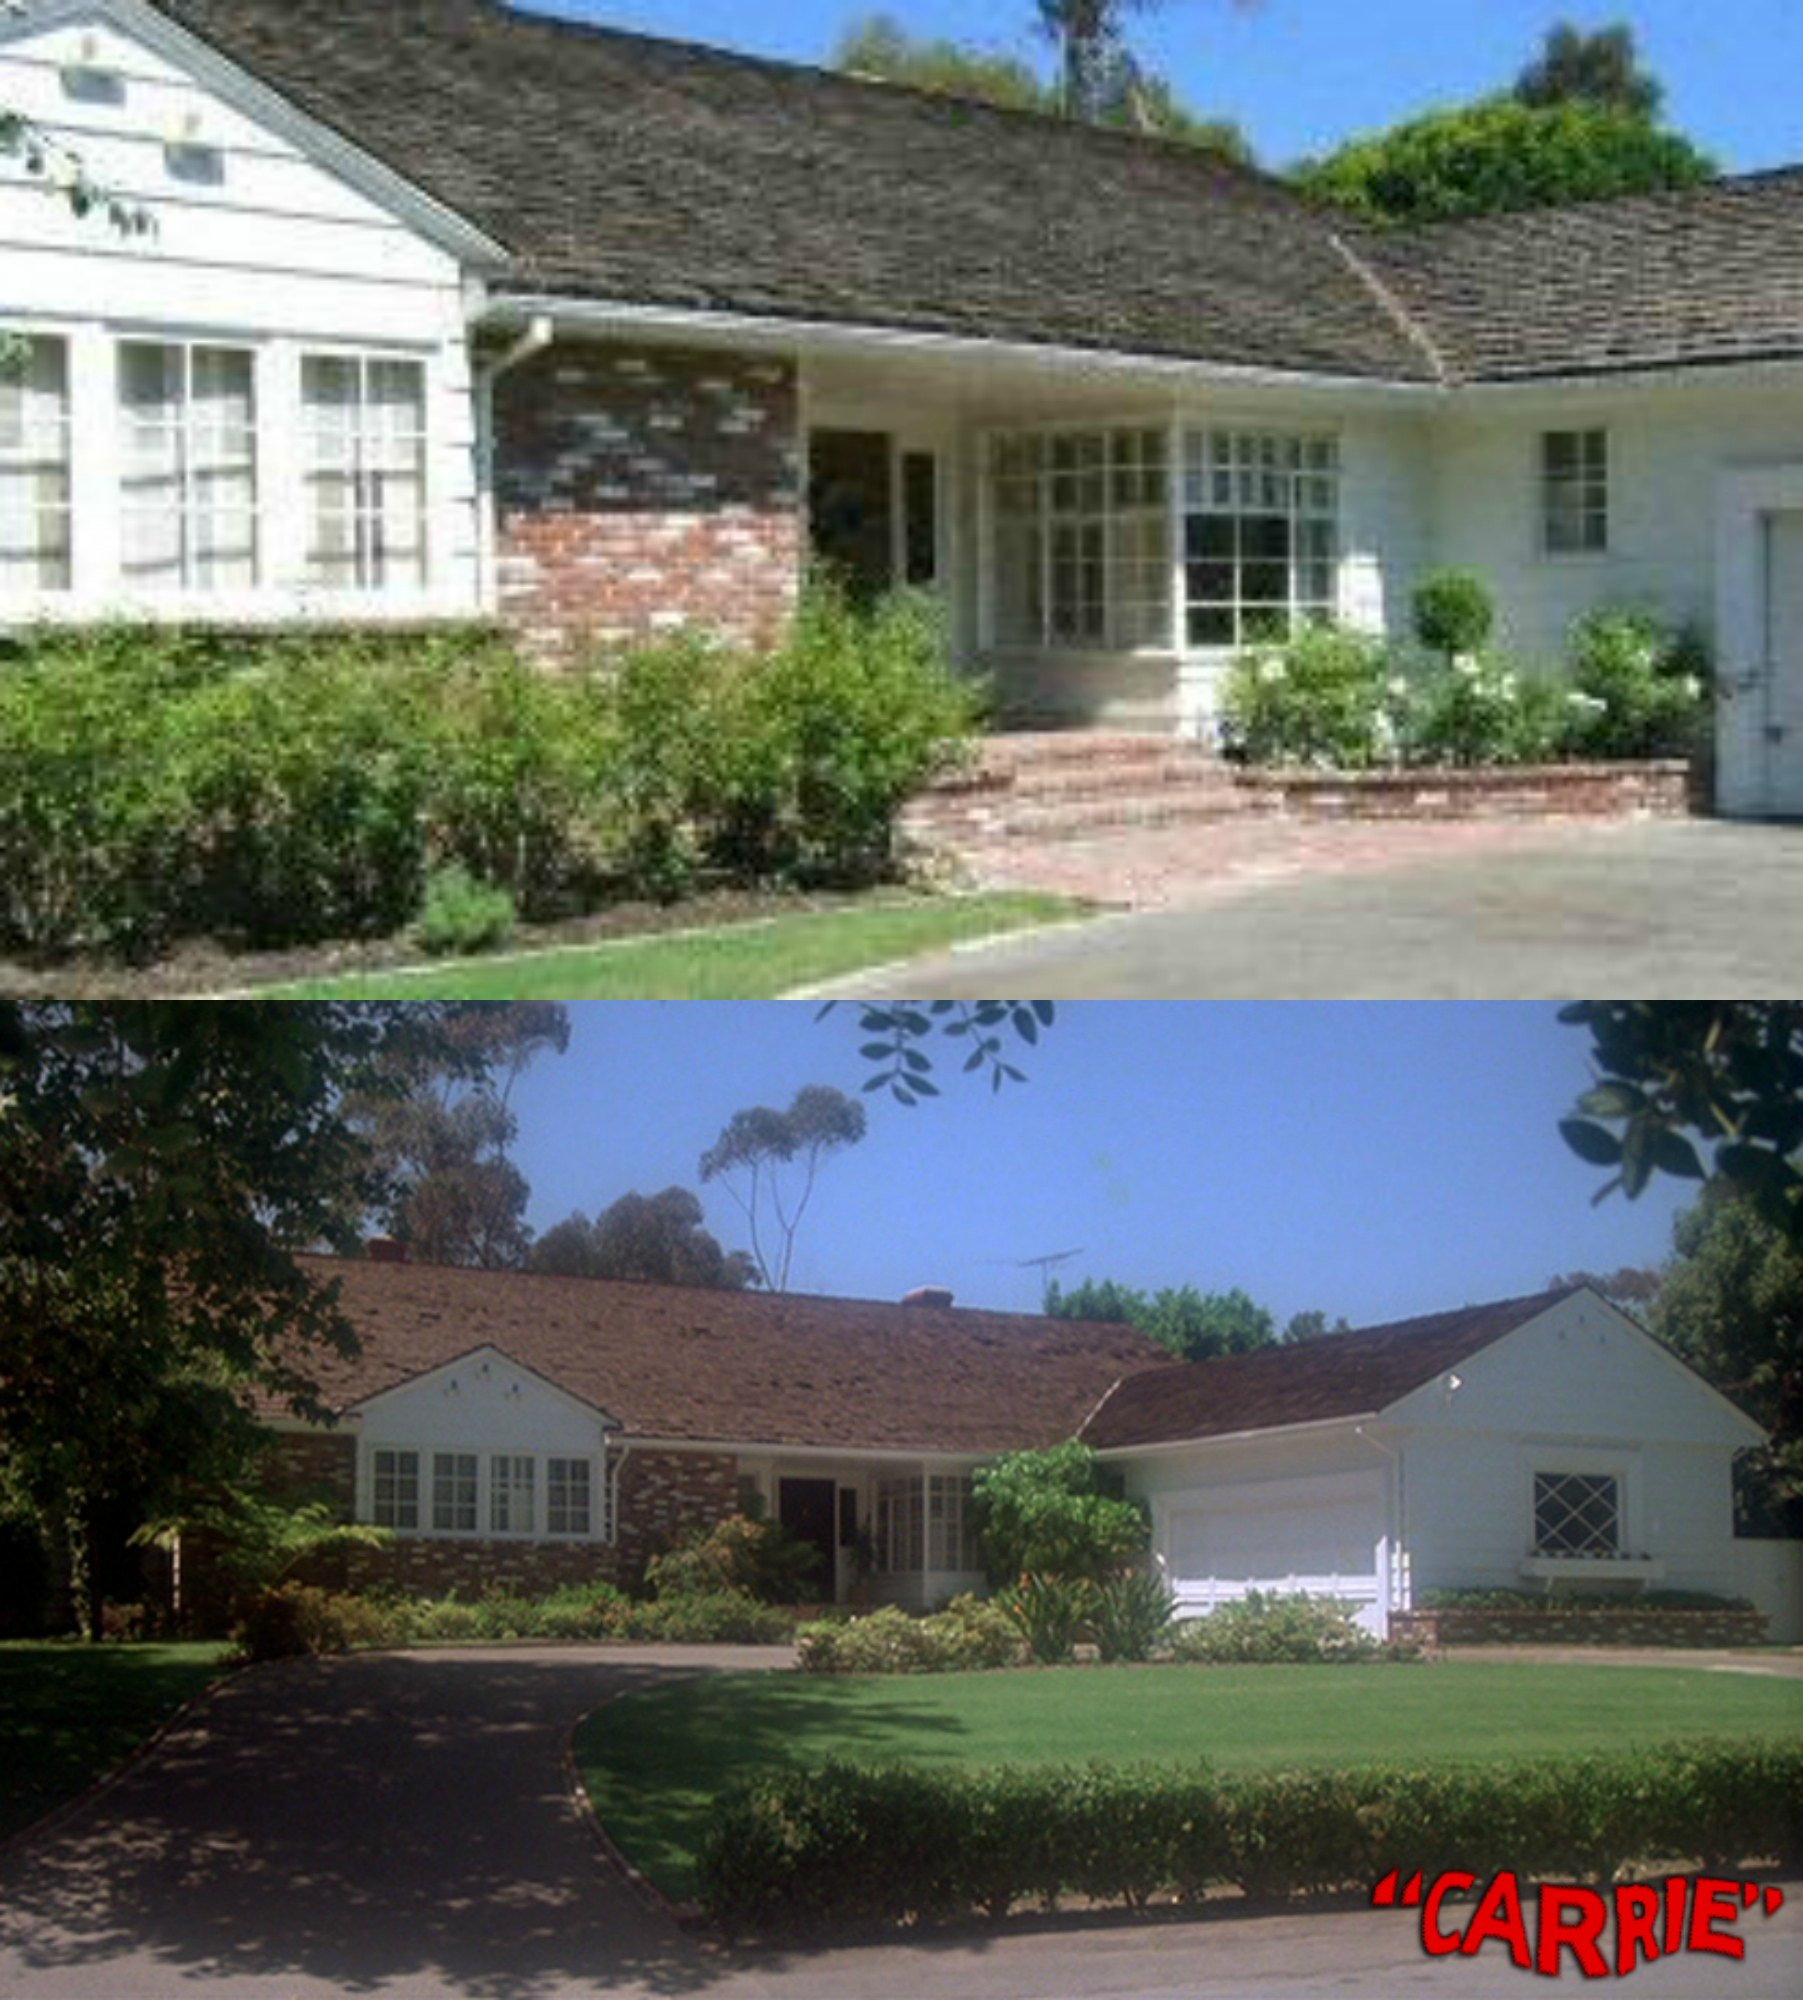 Carrie 1976 Snell house comparison.jpg